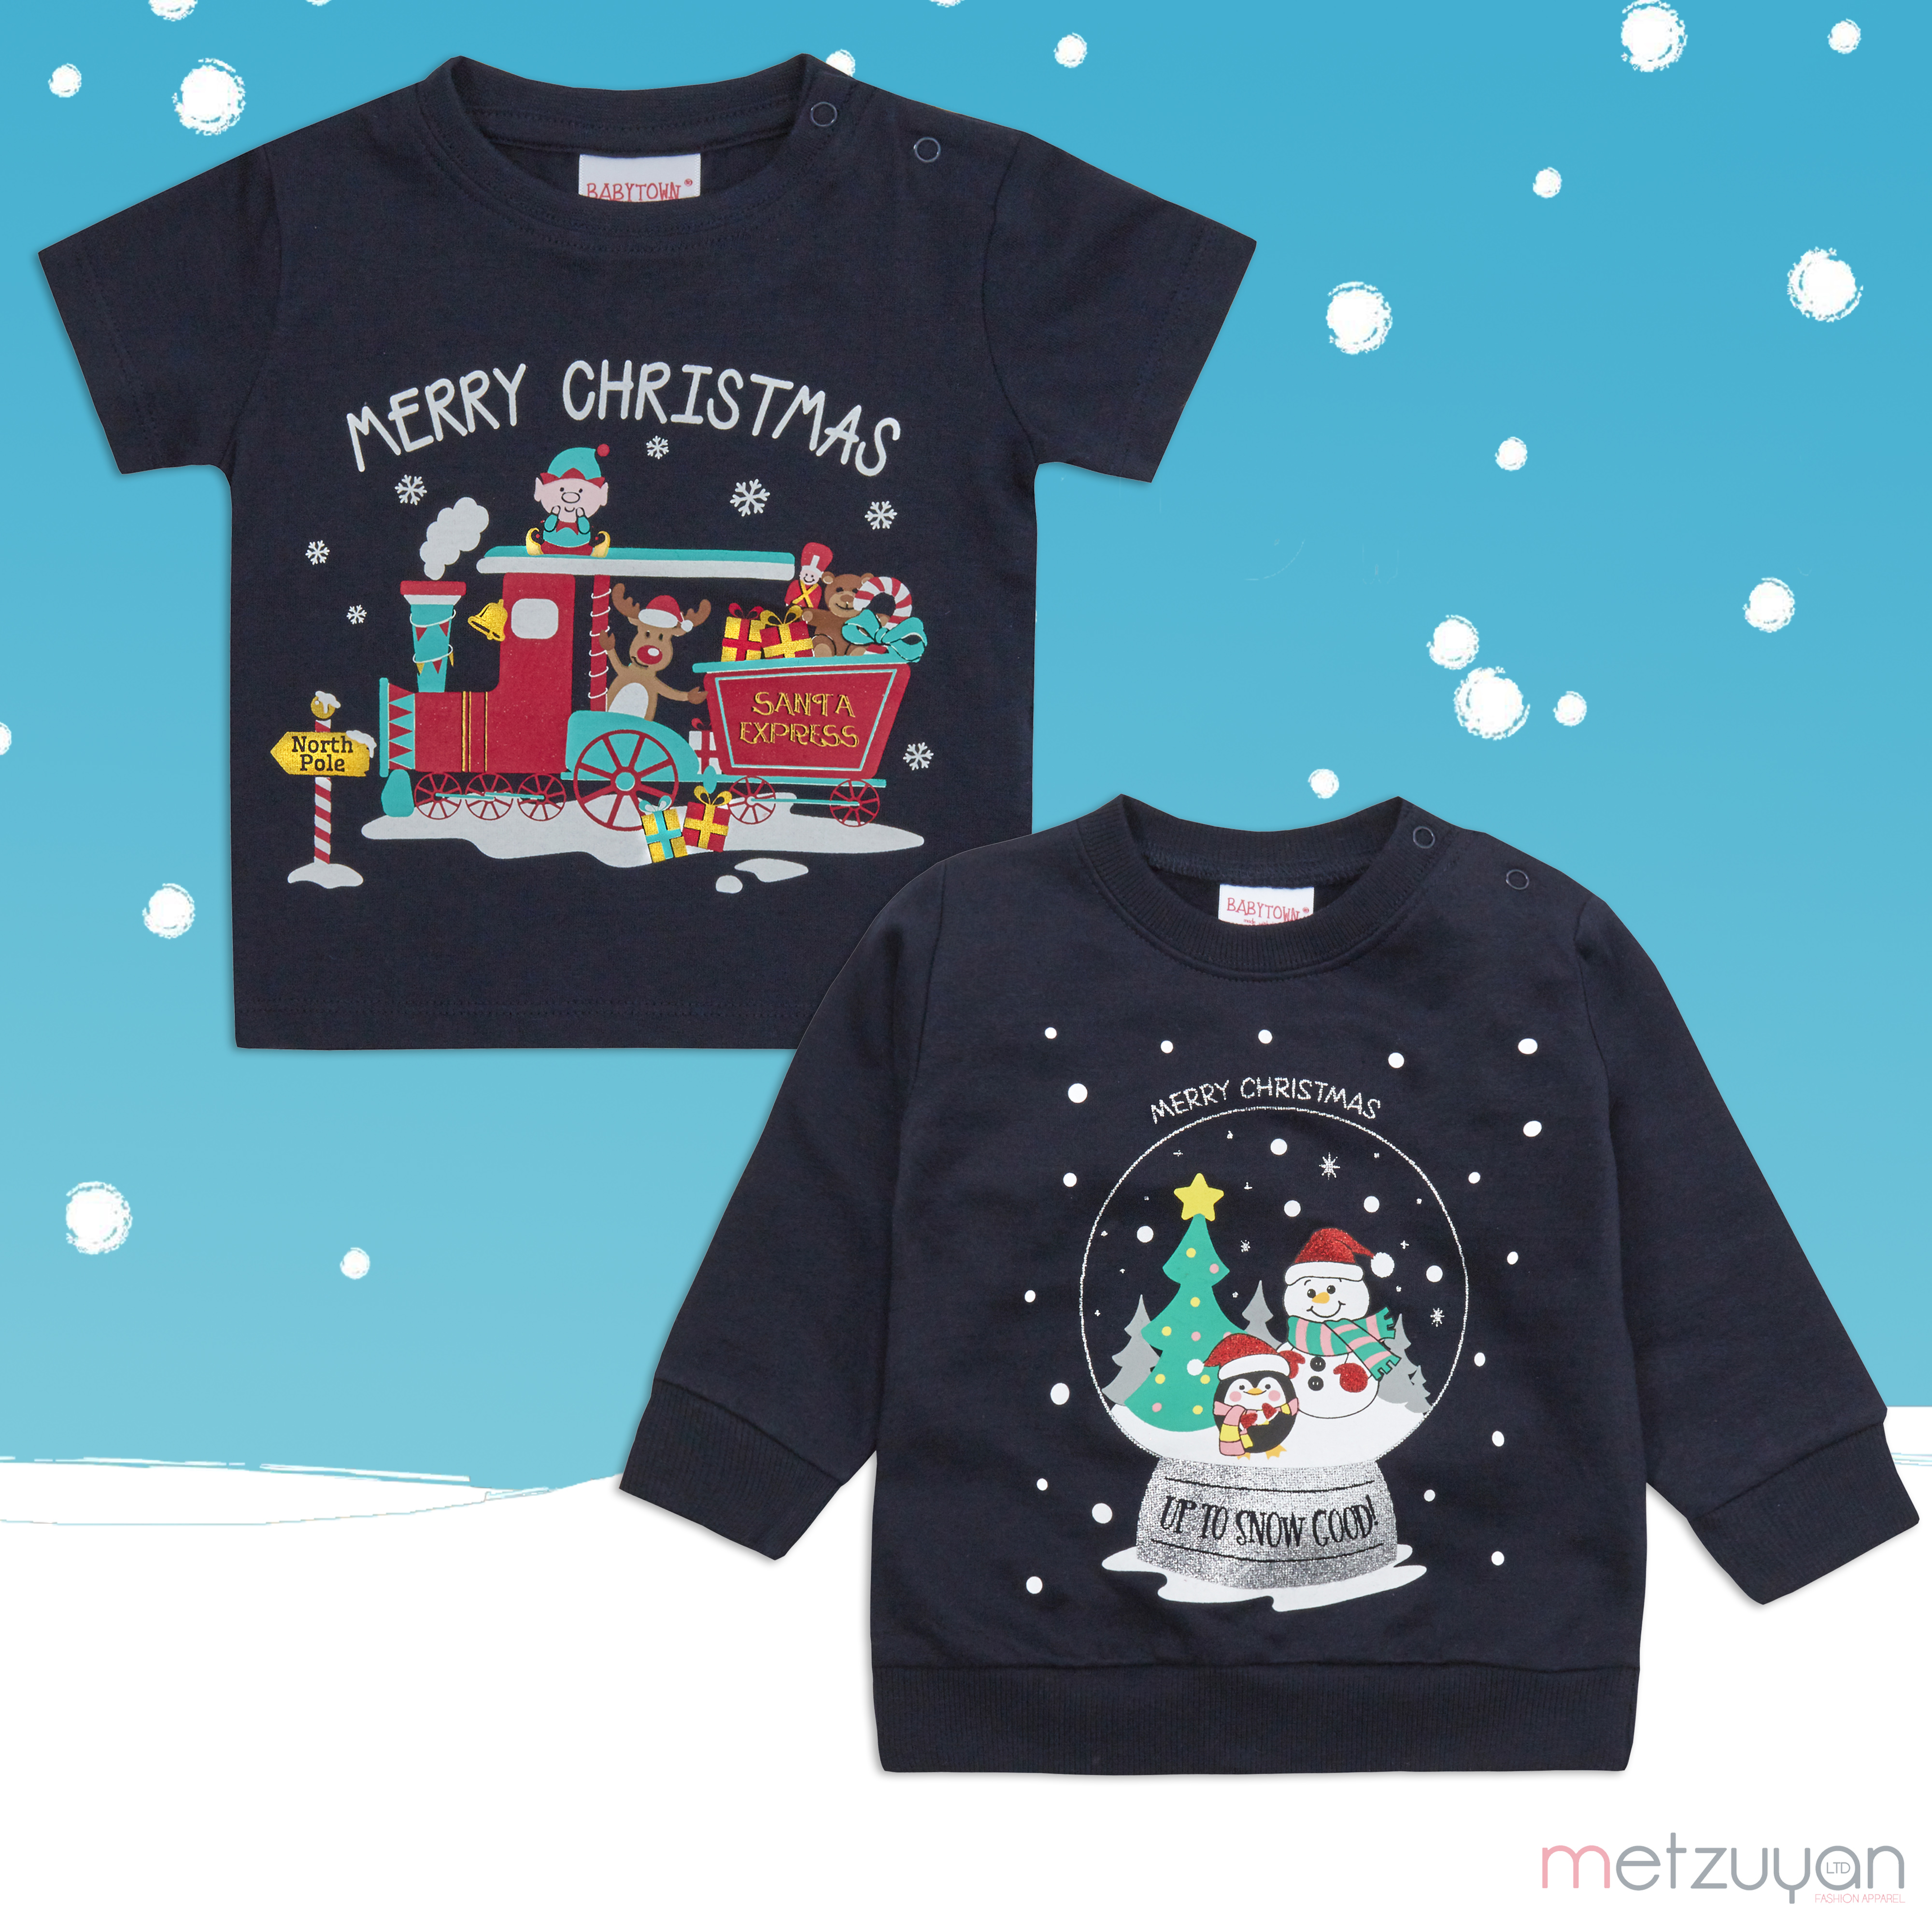 Baby Girls and Boys Unisex Xmas Printed T-Shirt and Sweater Christmas Design Set